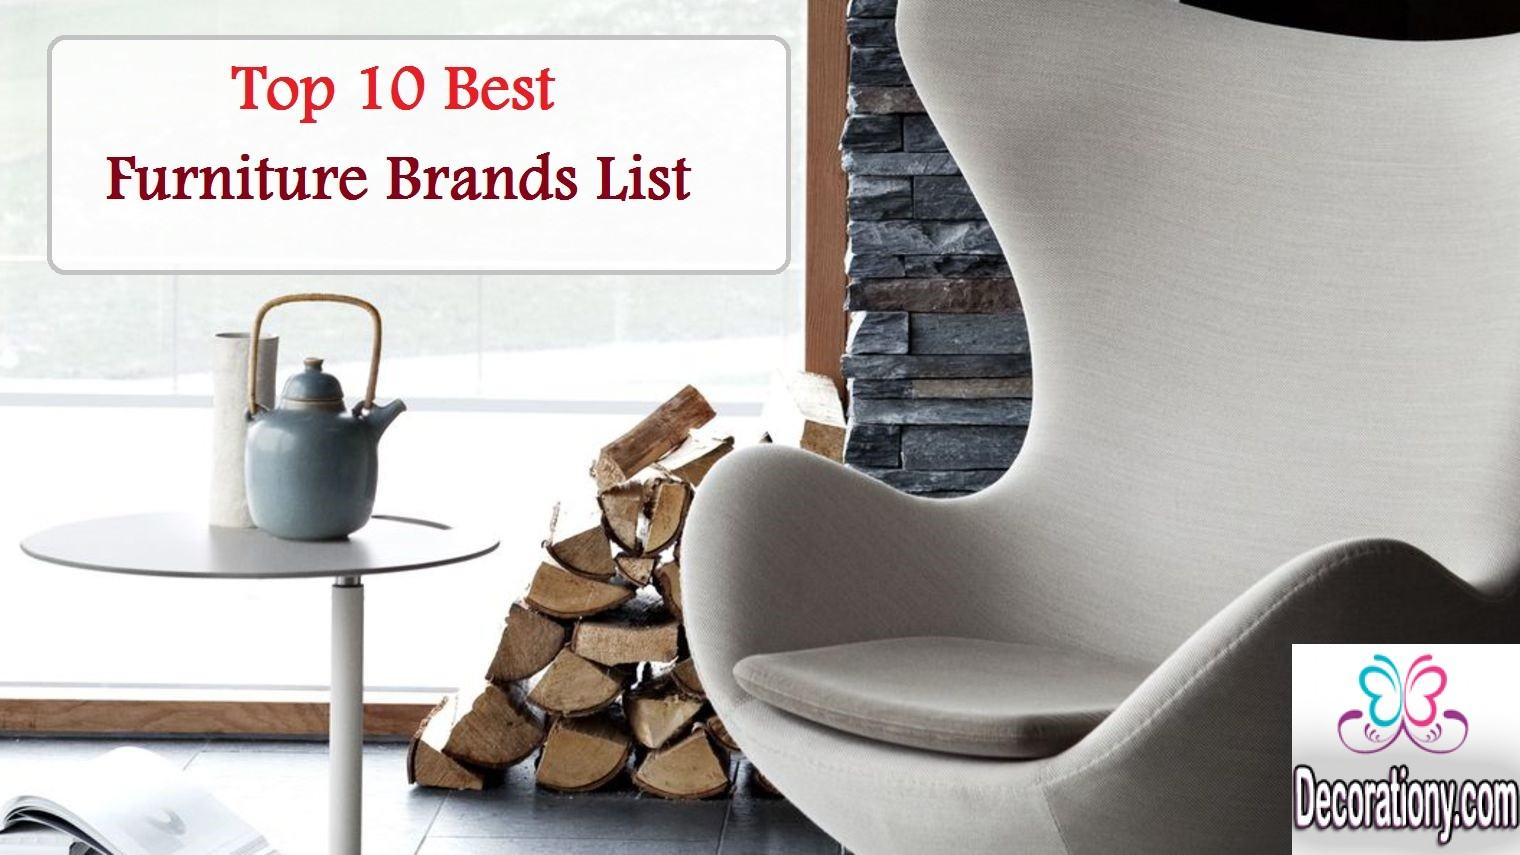 Top 10 Best Furniture Brands List  Decor Or Design